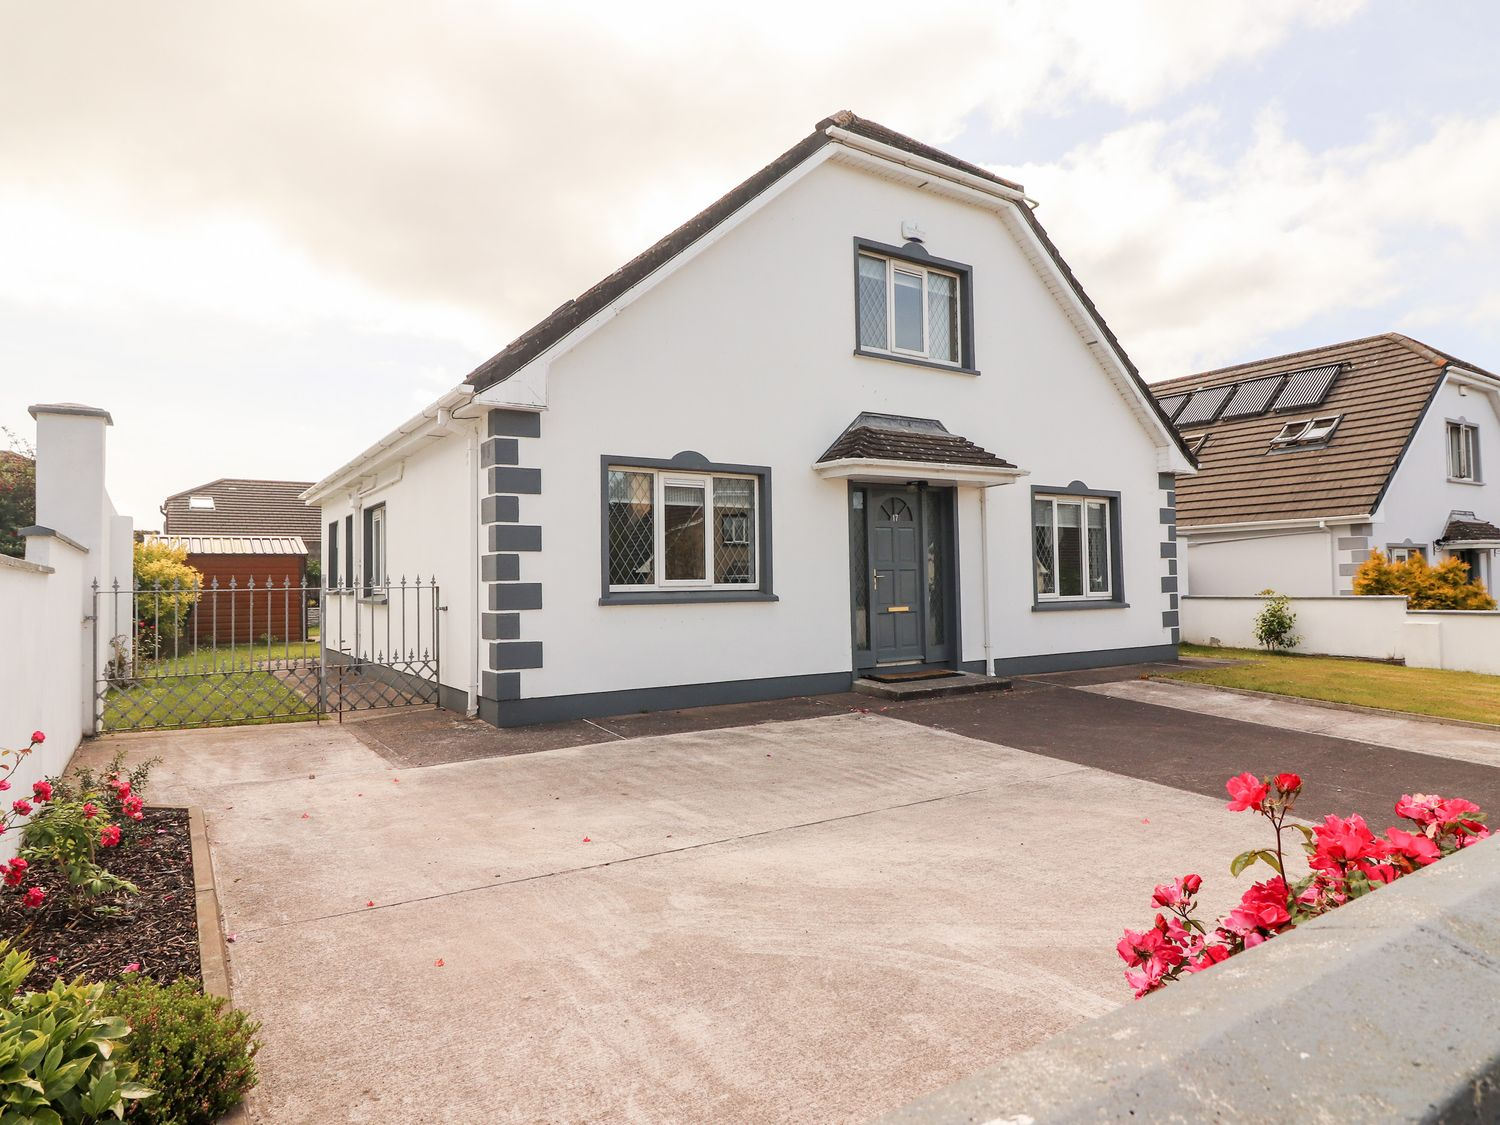 17 CLOVER HILL - County Kerry - 1070416 - photo 1